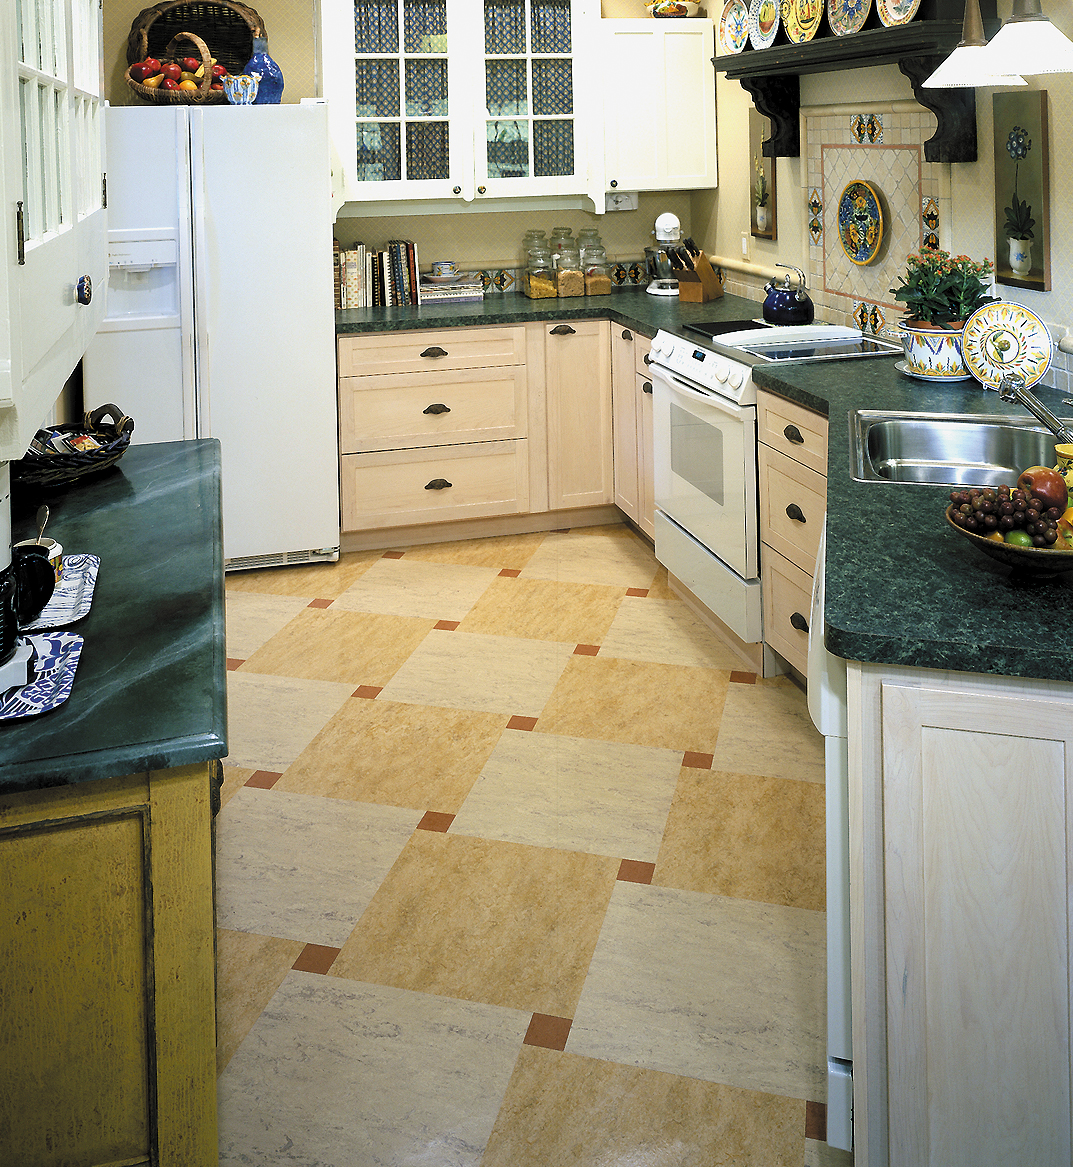 Marmoleum kitchen floor floor matttroy for Cool kitchen floor ideas